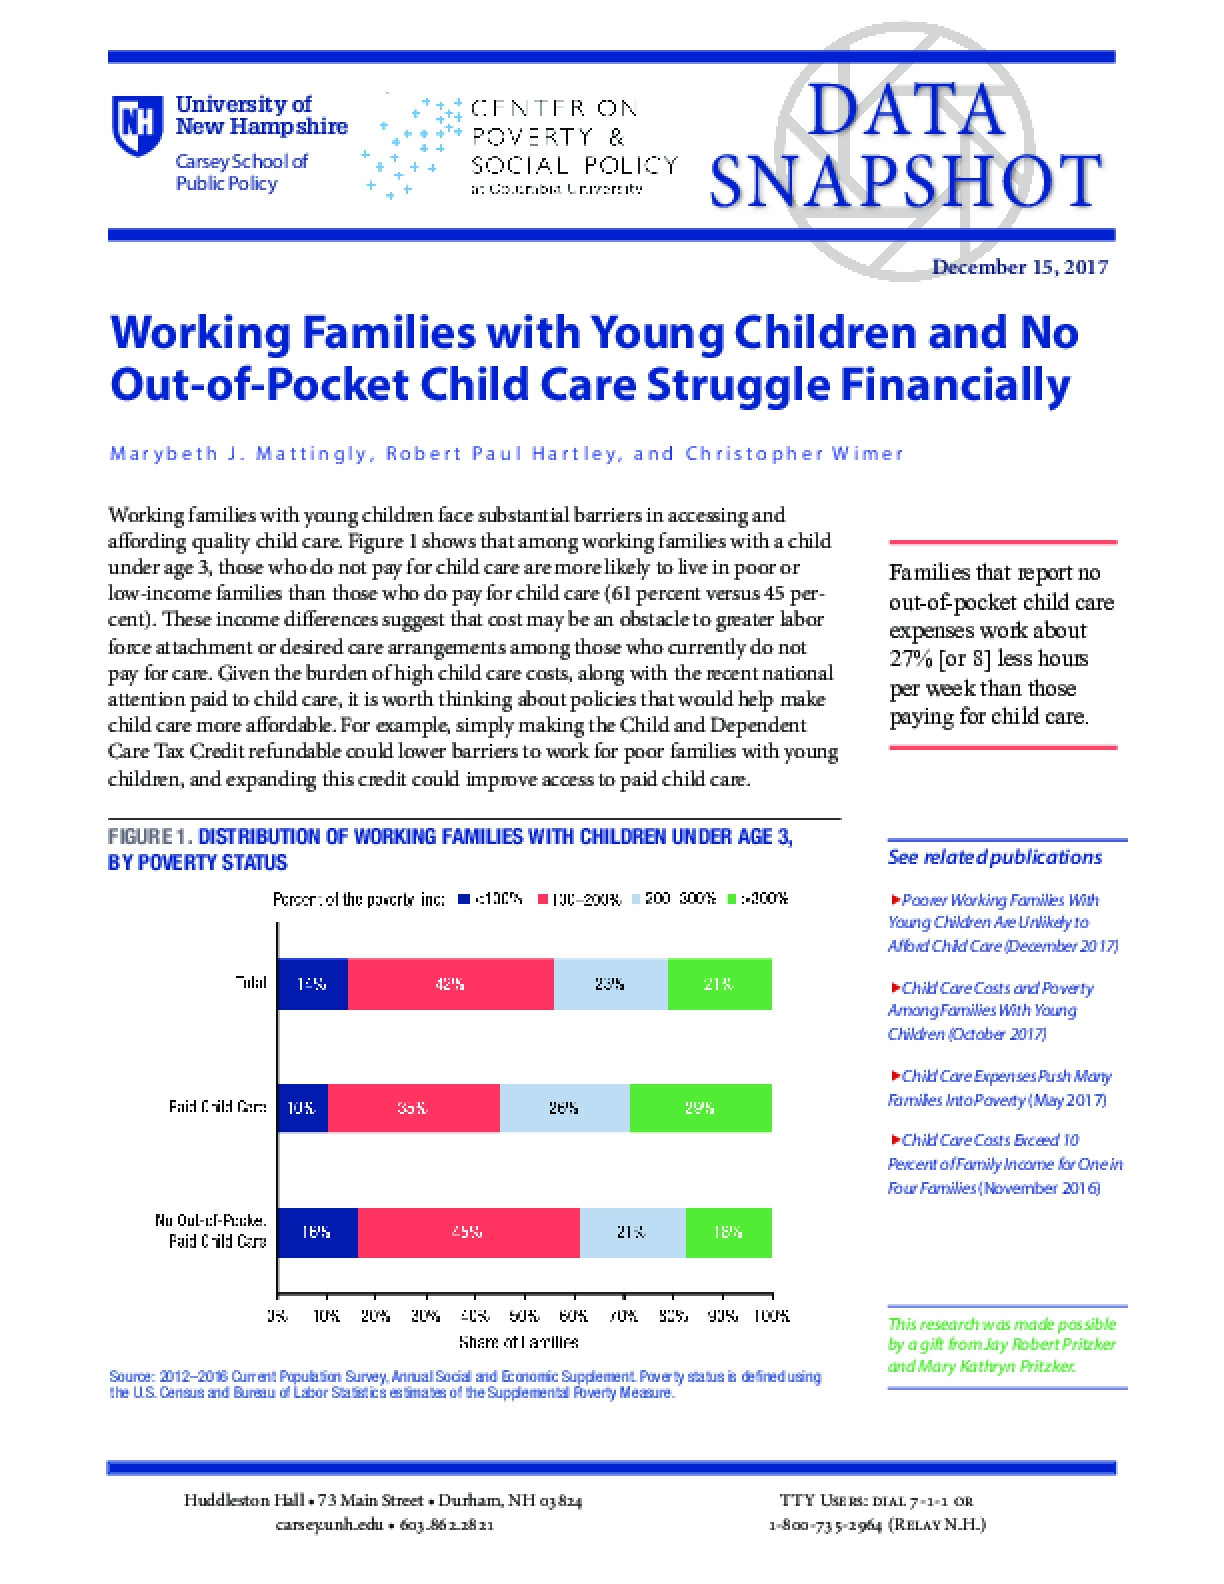 Data Snapshot: Working Families with Young Children and No Out-of-Pocket Child Care Struggle Financially